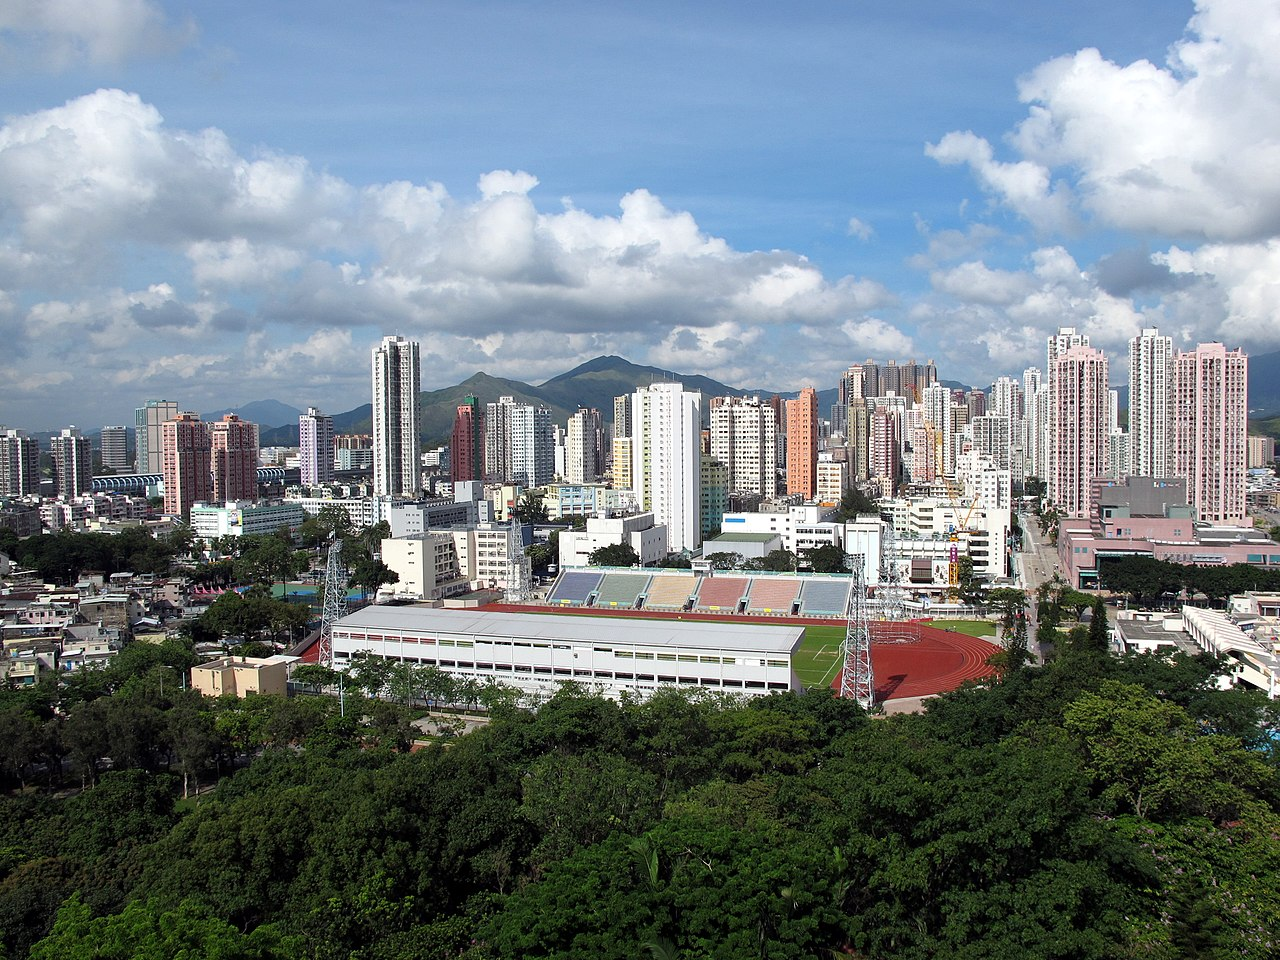 Day view of the Yuen Long District skyline